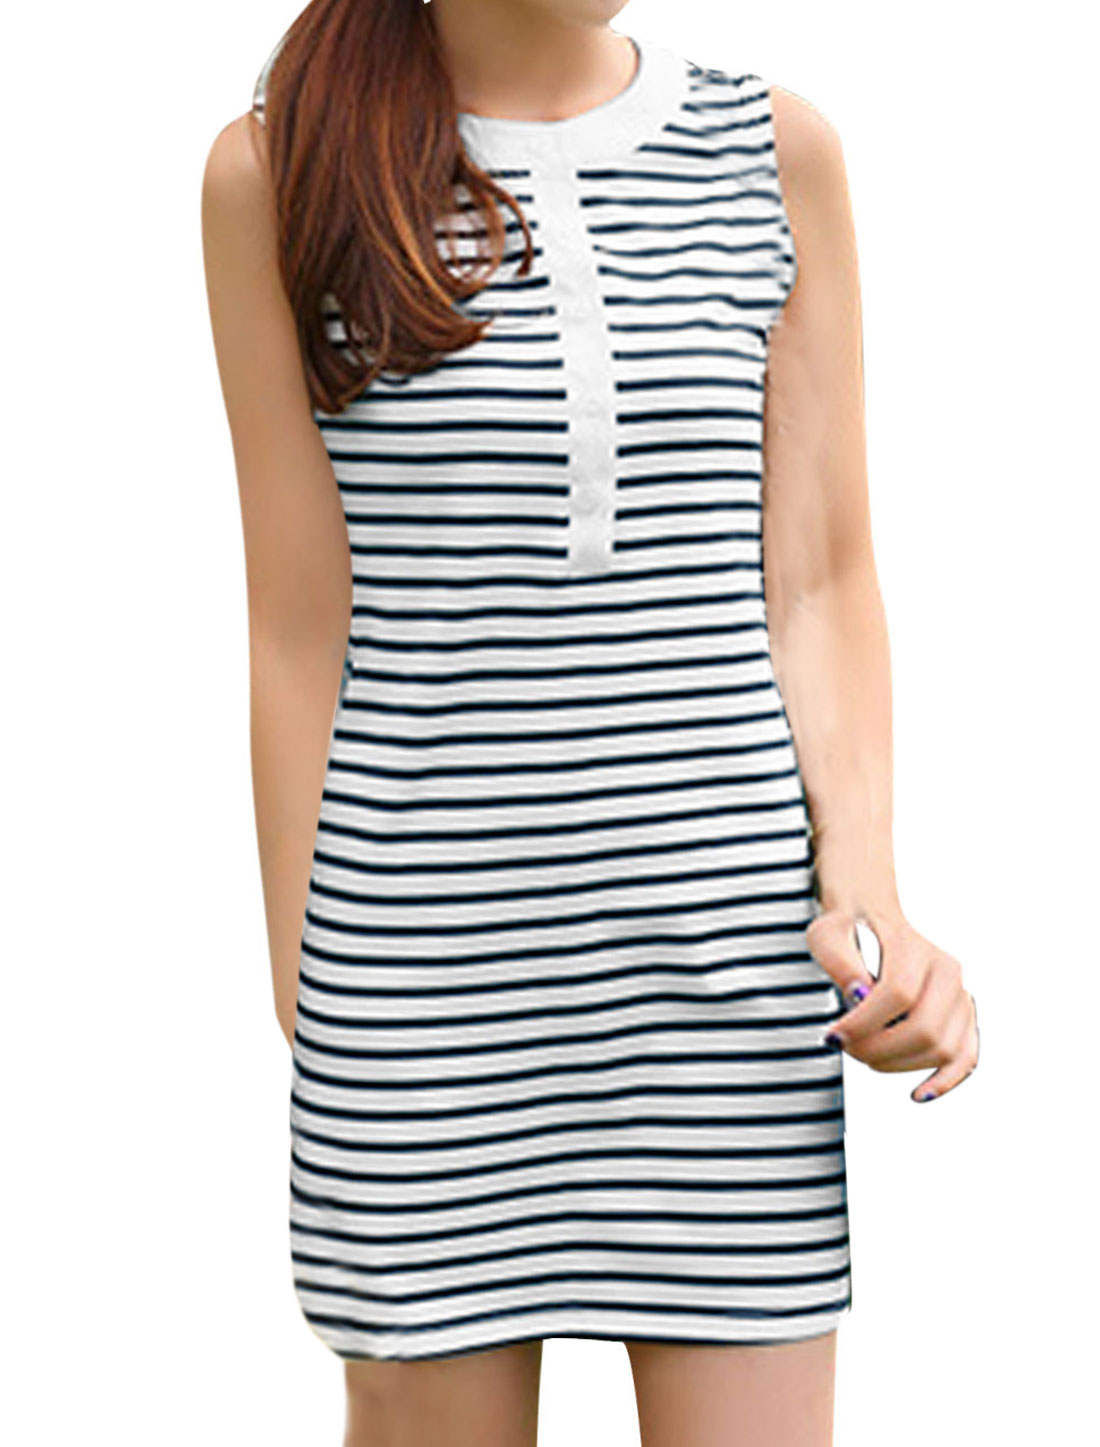 Women Stripes Button Down Sheathy Tank Dress White Navy Blue M